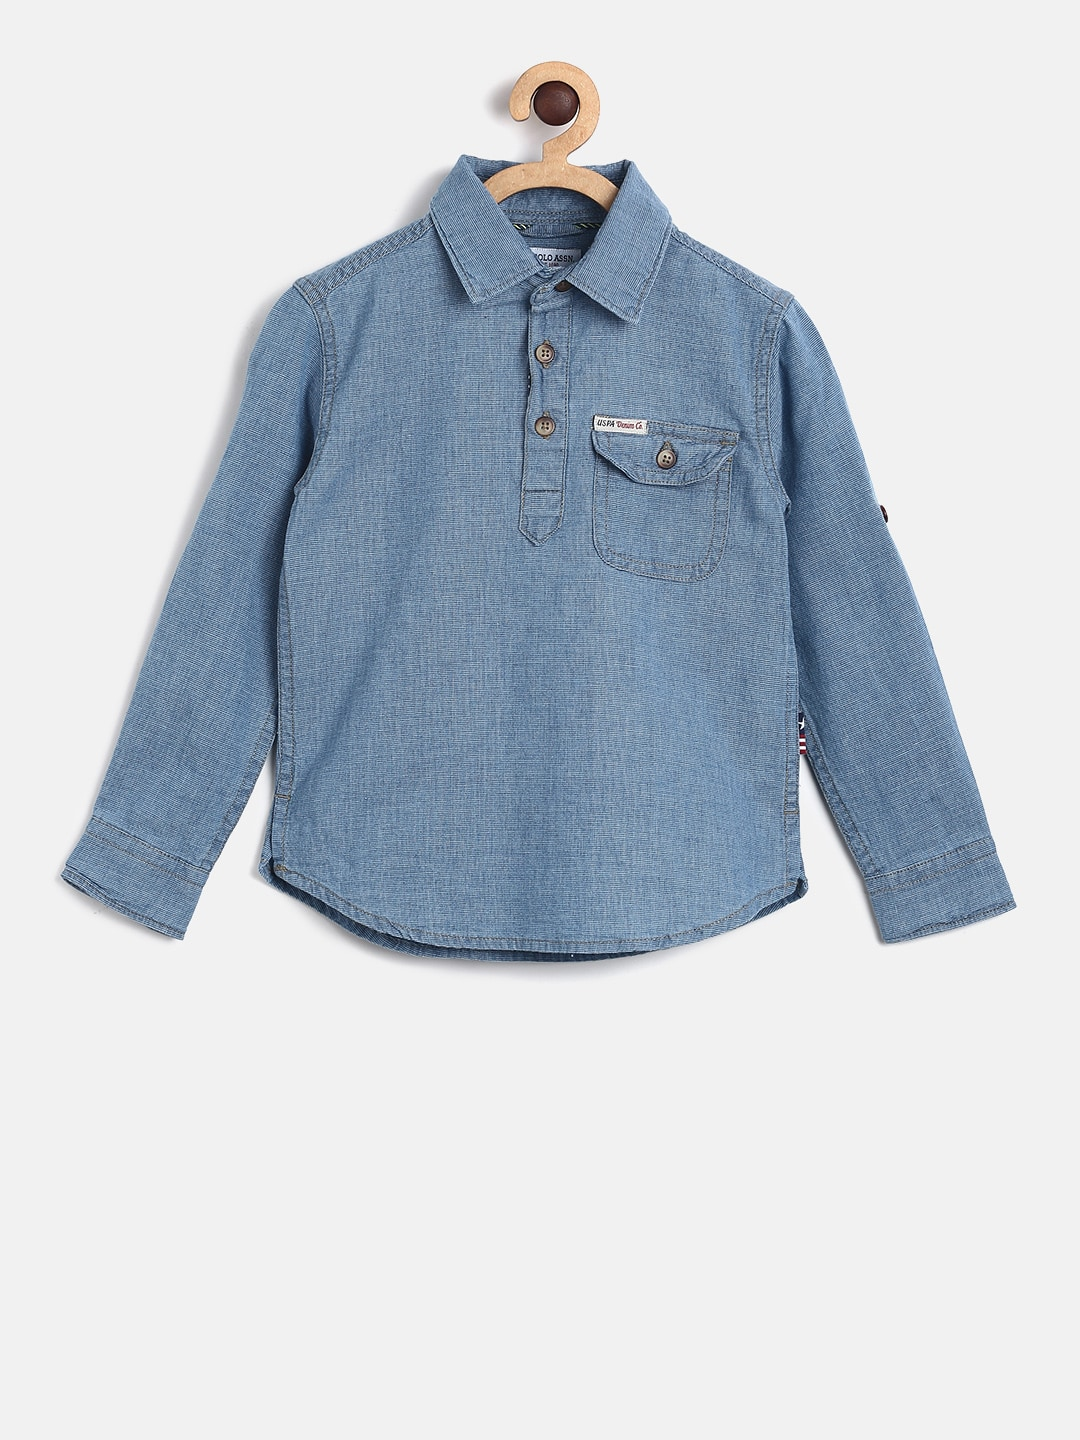 c798f4661b3 Boys Shirts- Buy Shirts for Boys online in India